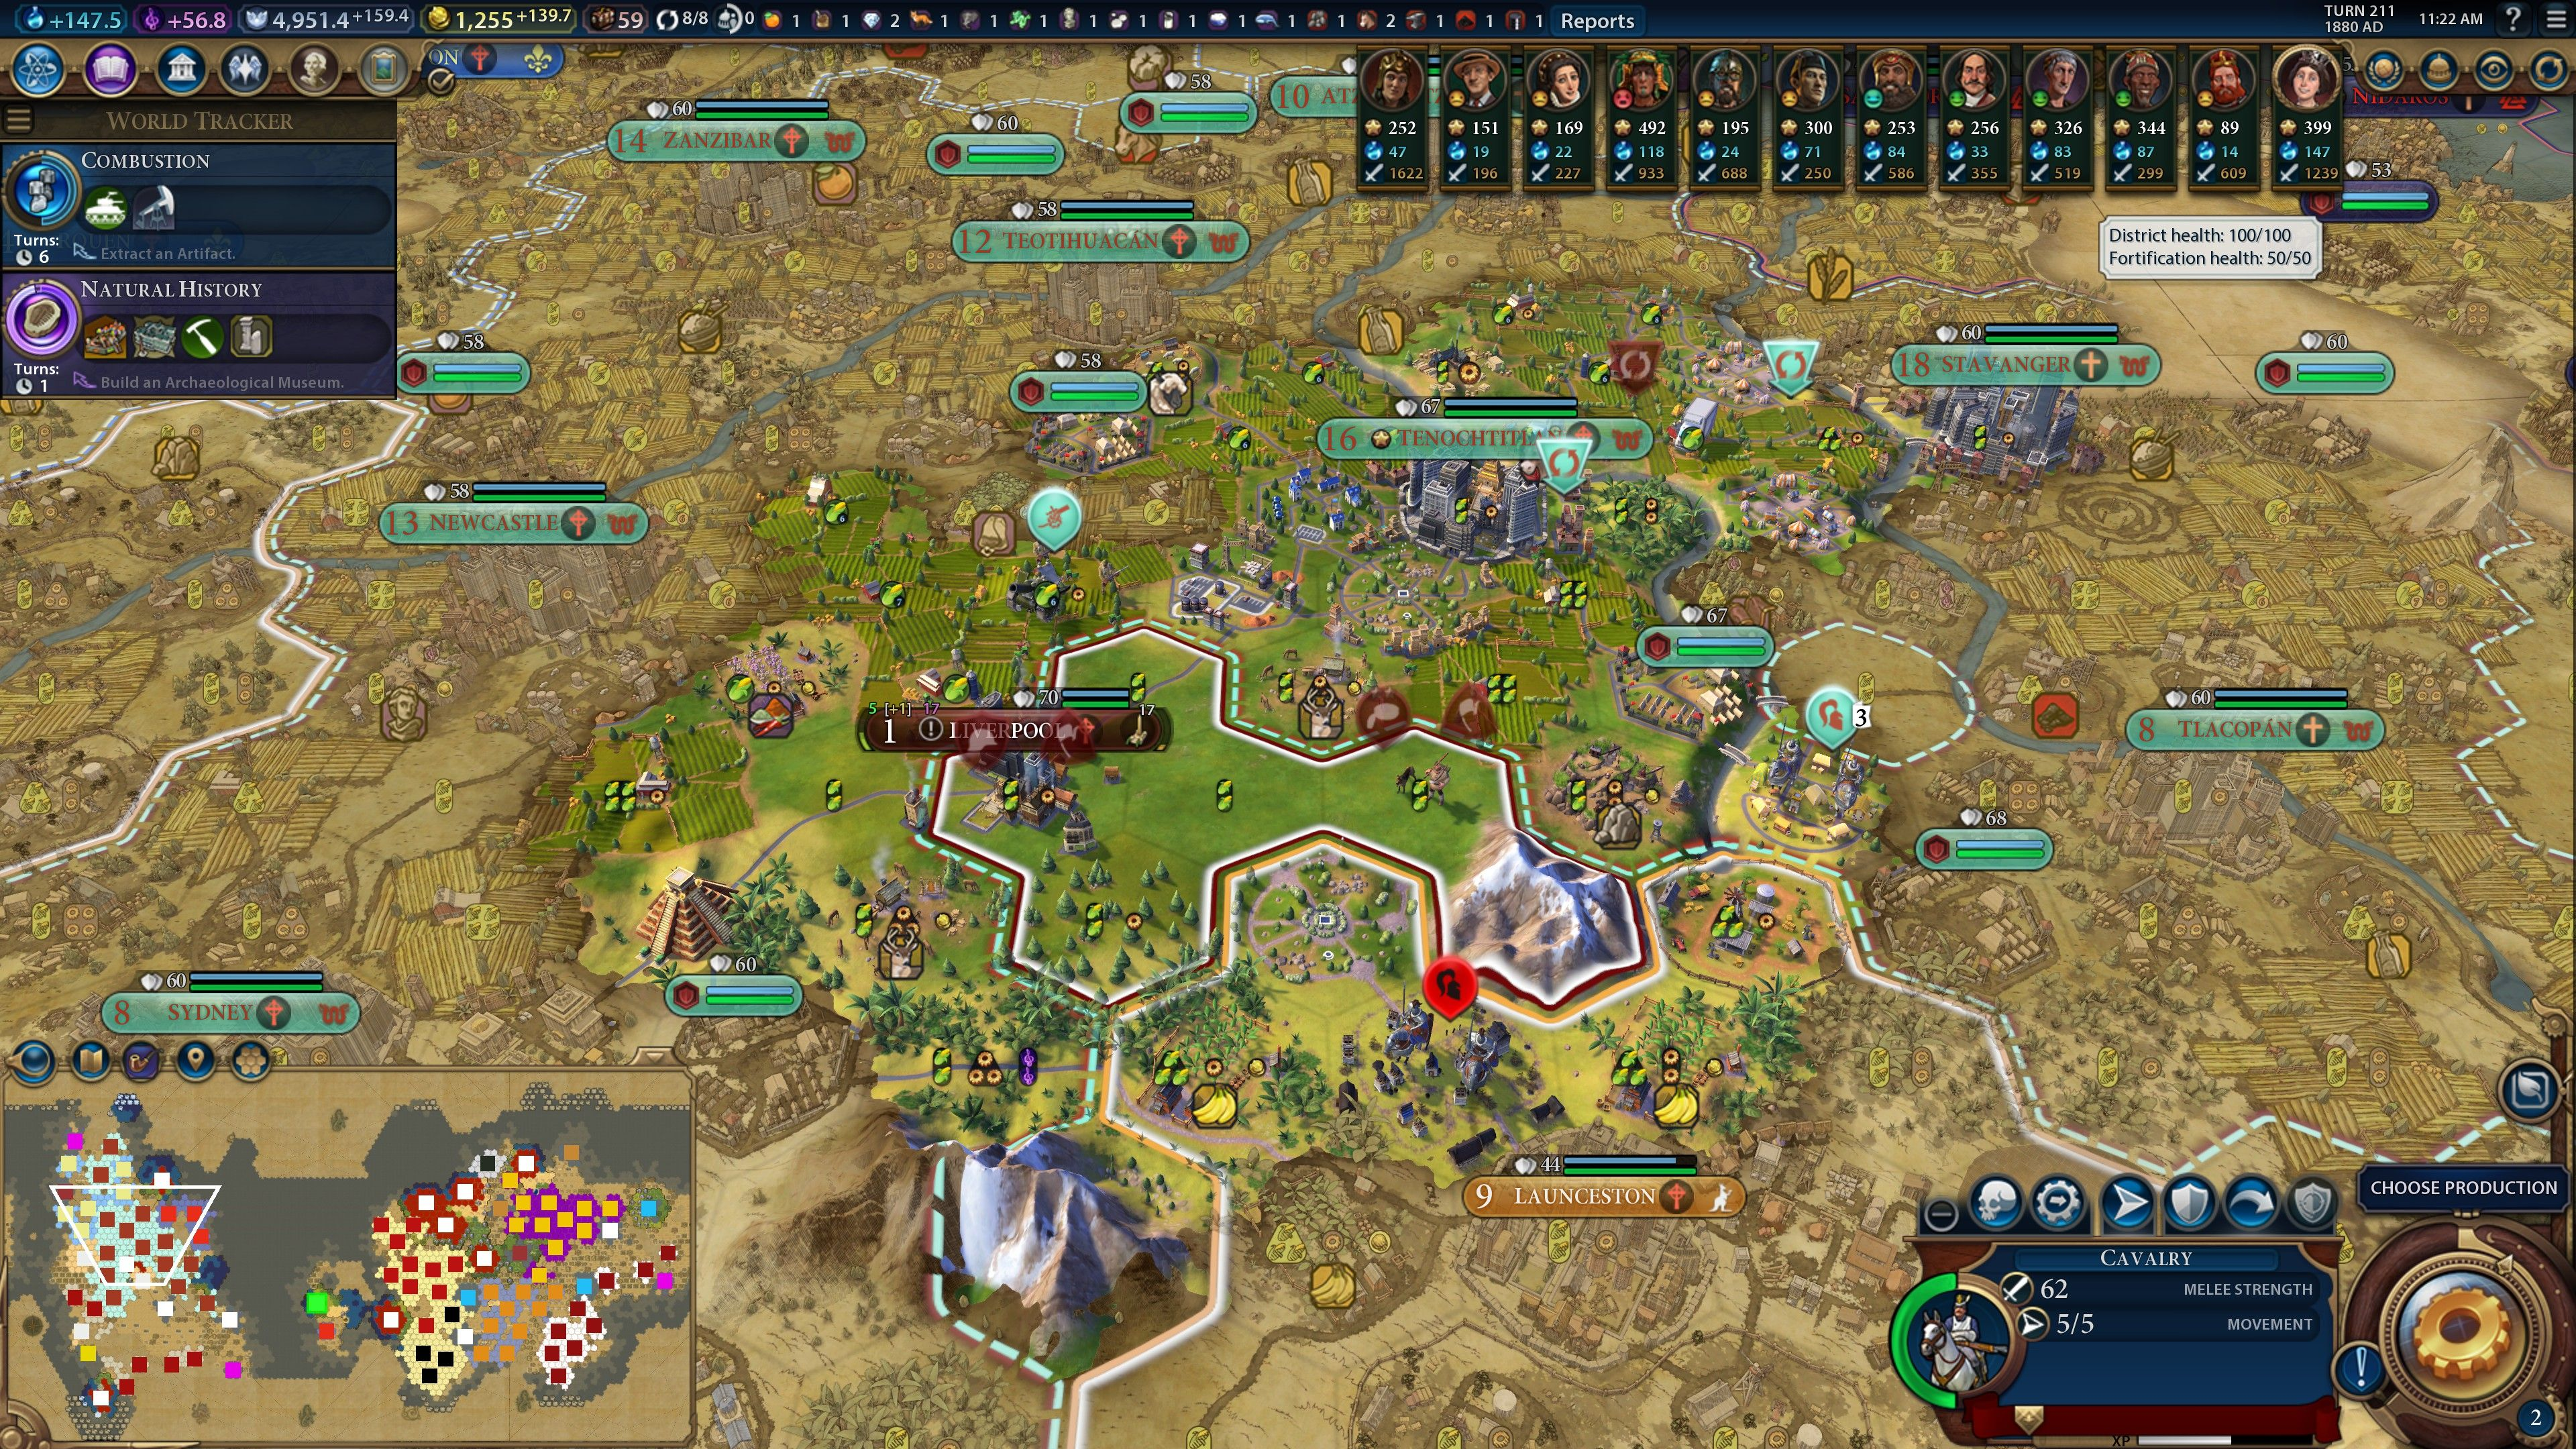 For queen and country puzzle edition civilizationbeyondearth for queen and country puzzle edition civilizationbeyondearth gaming civilization games gumiabroncs Images